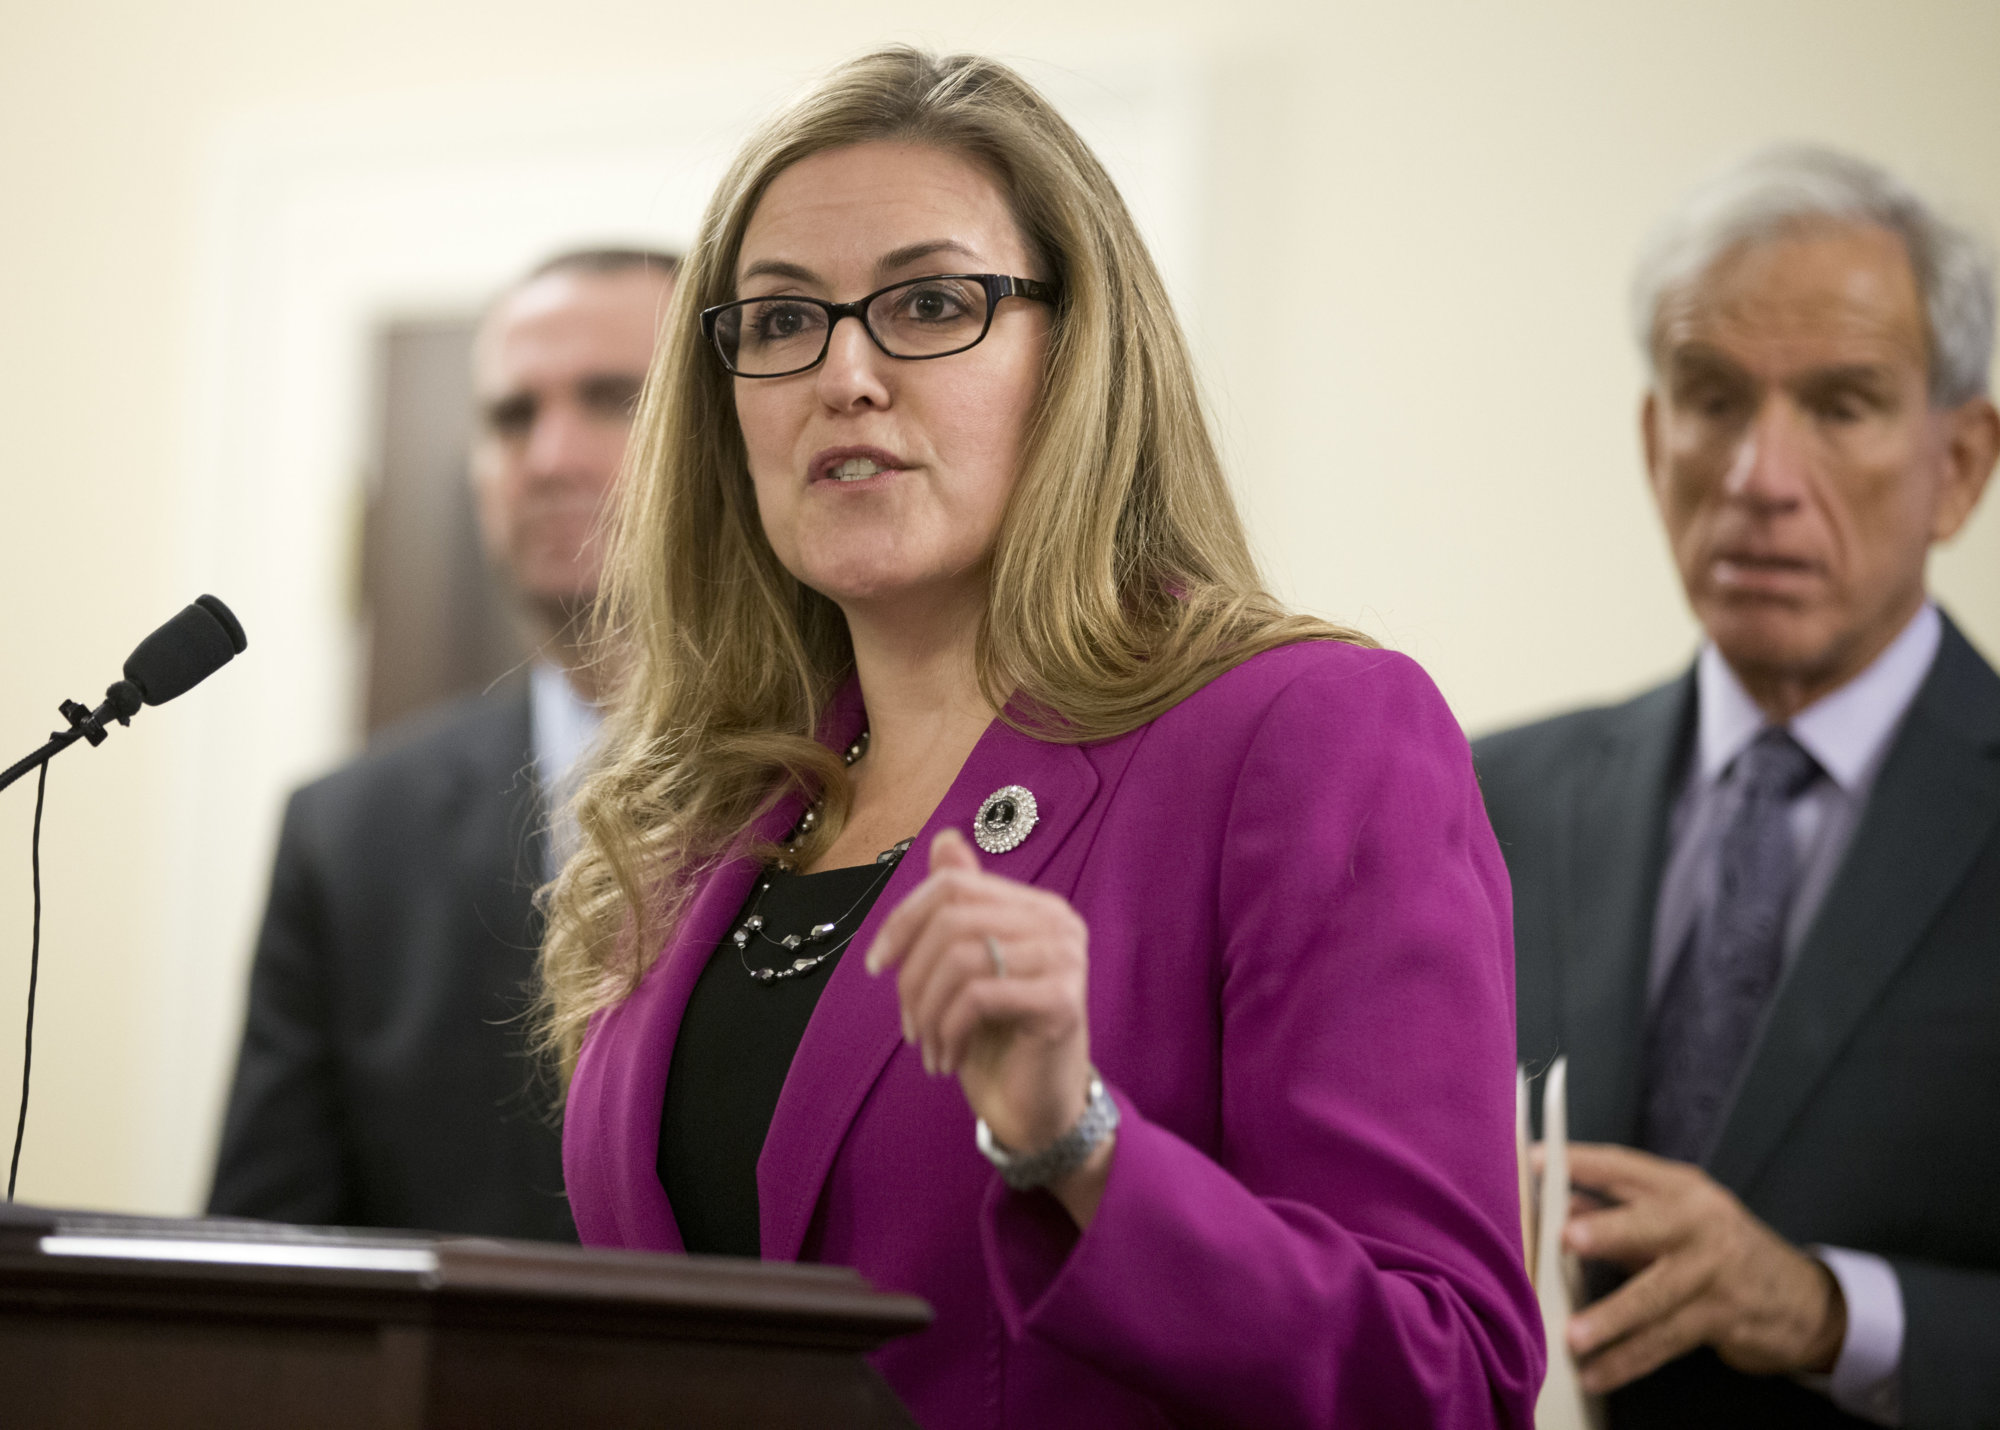 Va. Rep. Wexton addresses white nationalism, student debt during 1st town hall